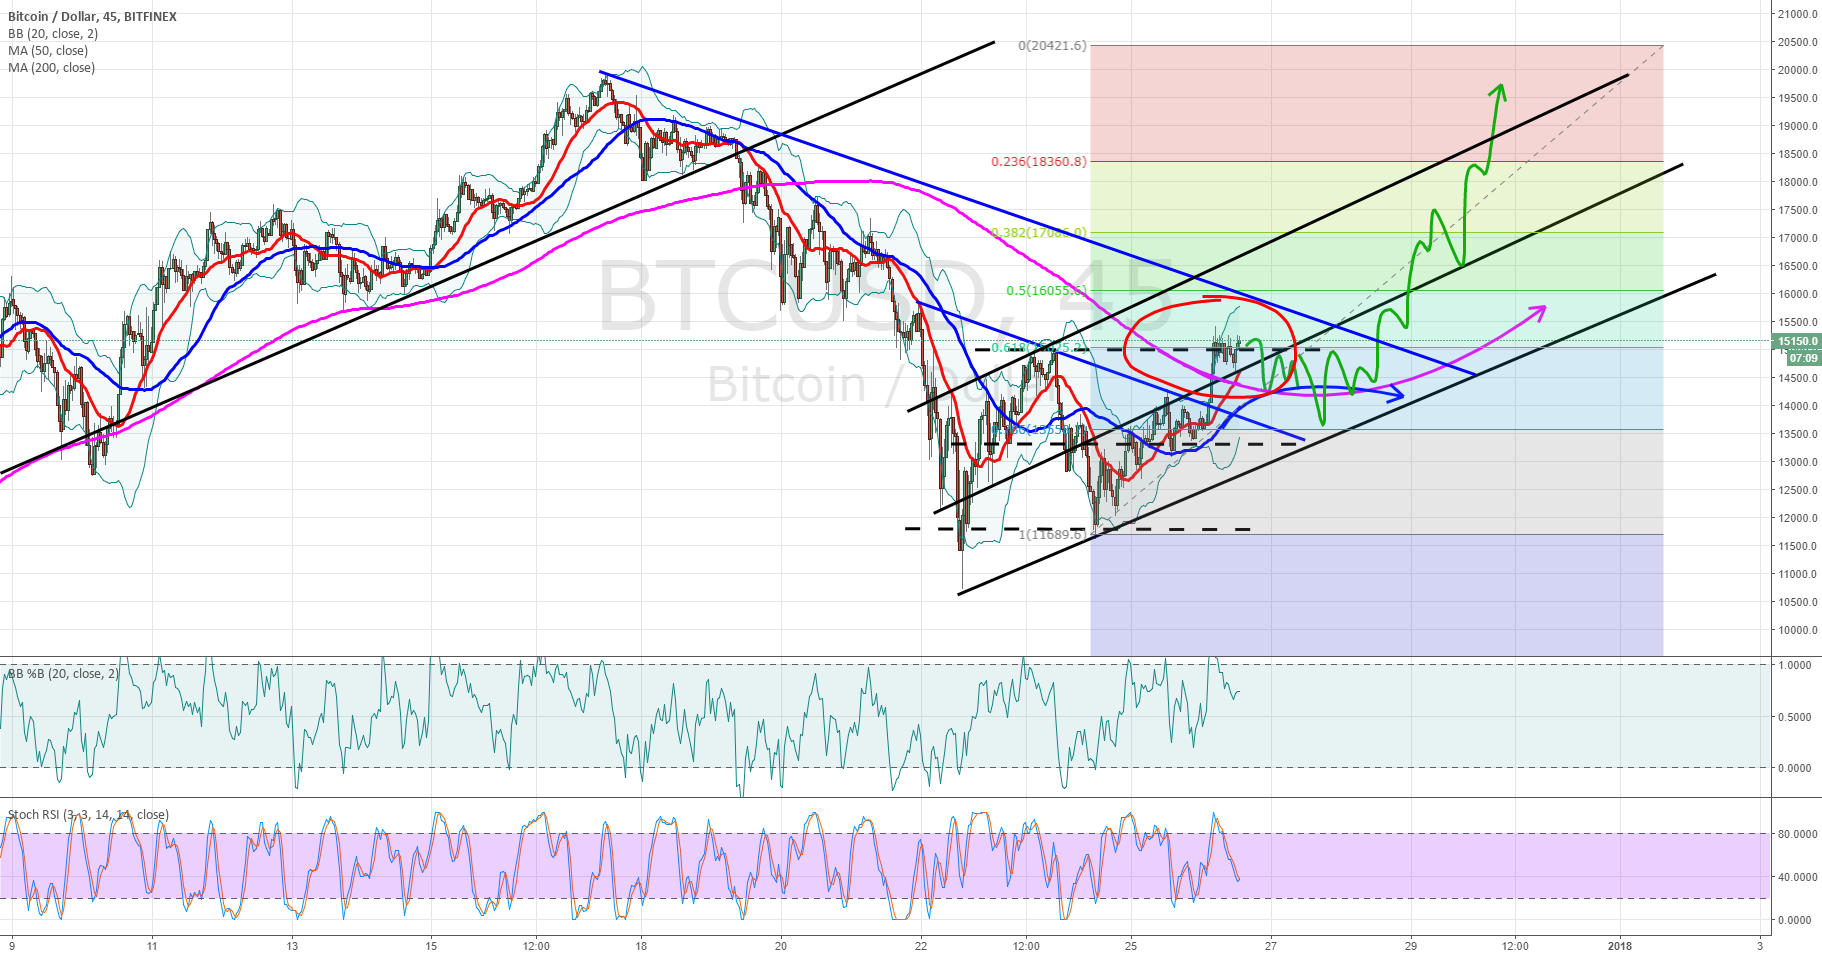 BTCUSD 45 min chart gained the support of the 200 MA